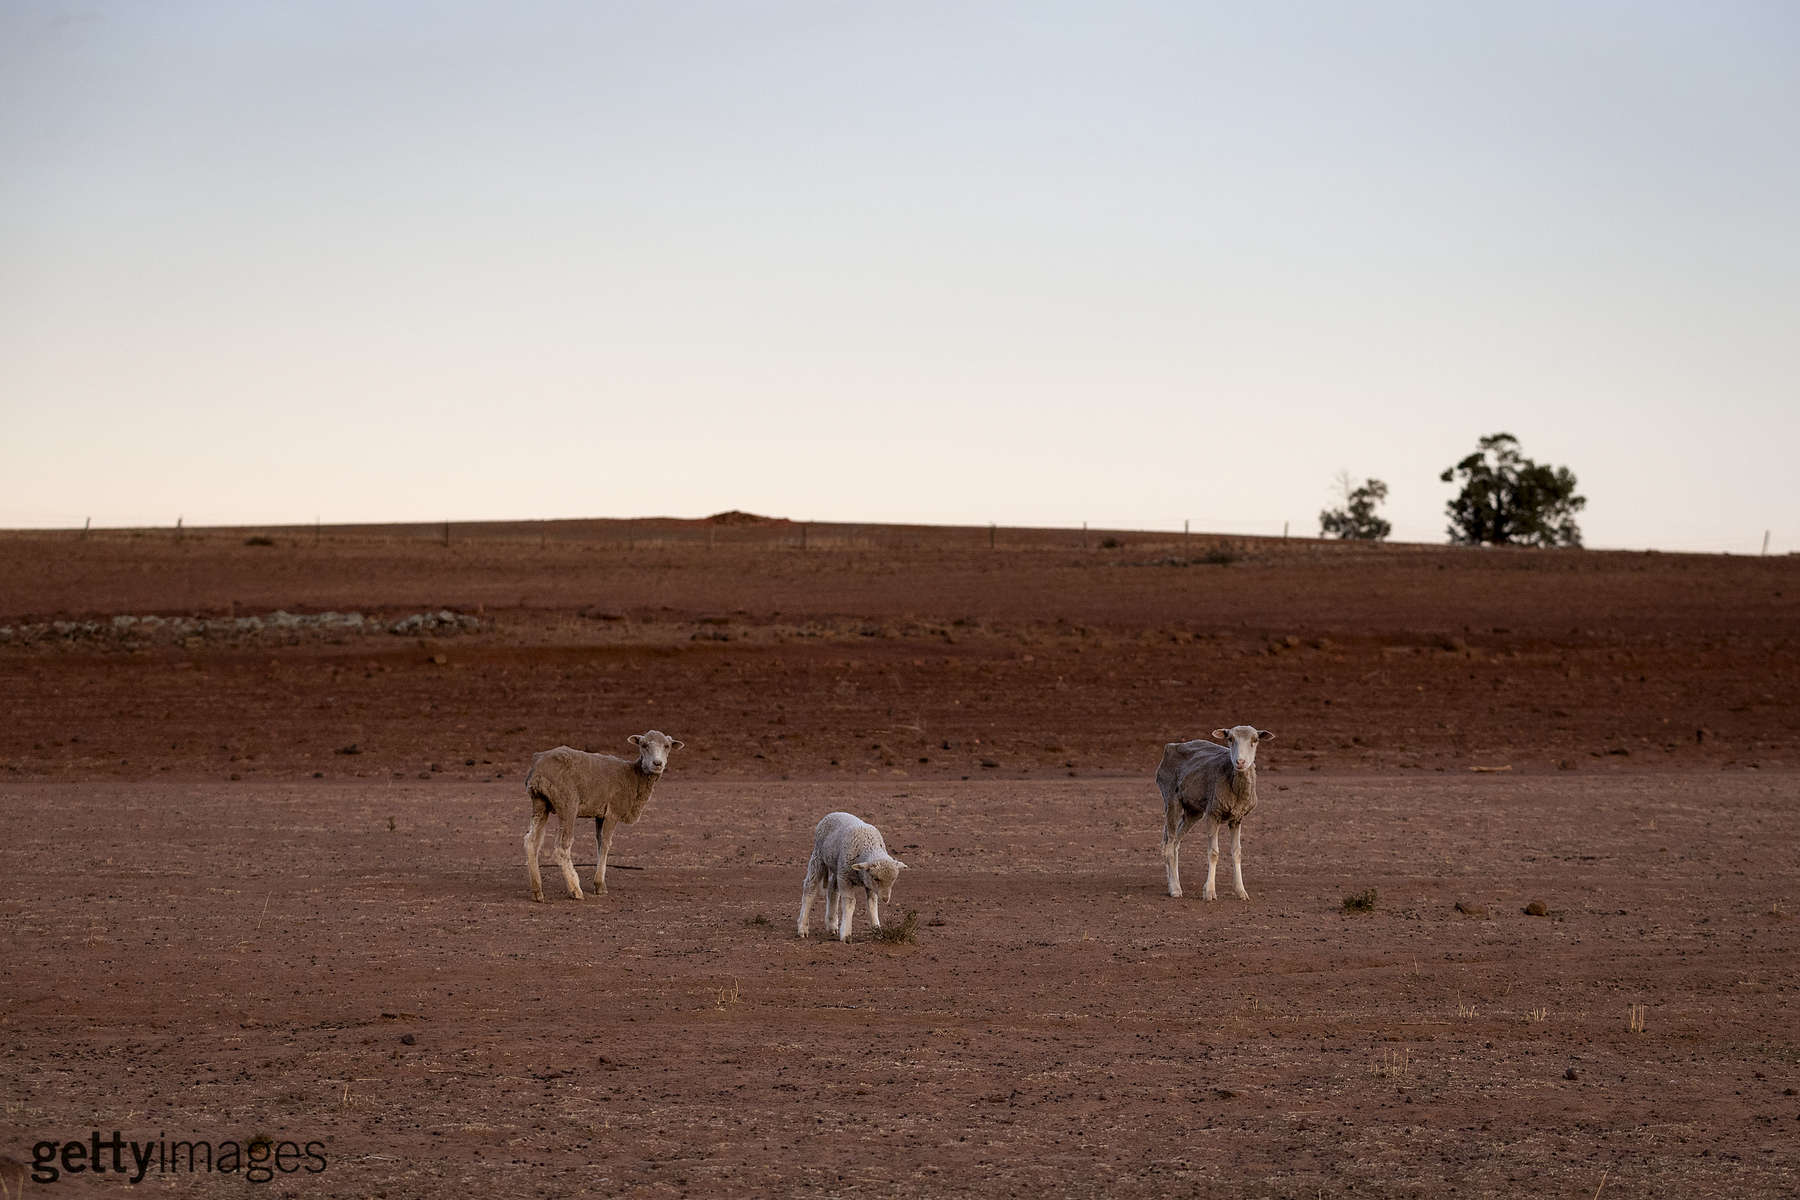 COONABARABRAN , NEW SOUTH WALES - JUNE 20:  The Jerry family farm 'Marlborough', 40 km outside Coonabarabran. The New South Wales State government recently approved an emergency drought relief package of A$600m, of which at least A$250m is allocated for low interest loans to assist eligible farm businesses to recover. The package has been welcomed, though in the words of a local farmer {quote}it barely touches the sides{quote}. Now with the real prospect of a dry El-Nino weather pattern hitting the state in Spring, the longer term outlook for rain here is dire. June 20, 2018 in Coonabarabran, Australia.  (Photo by Brook Mitchell/Getty Images)